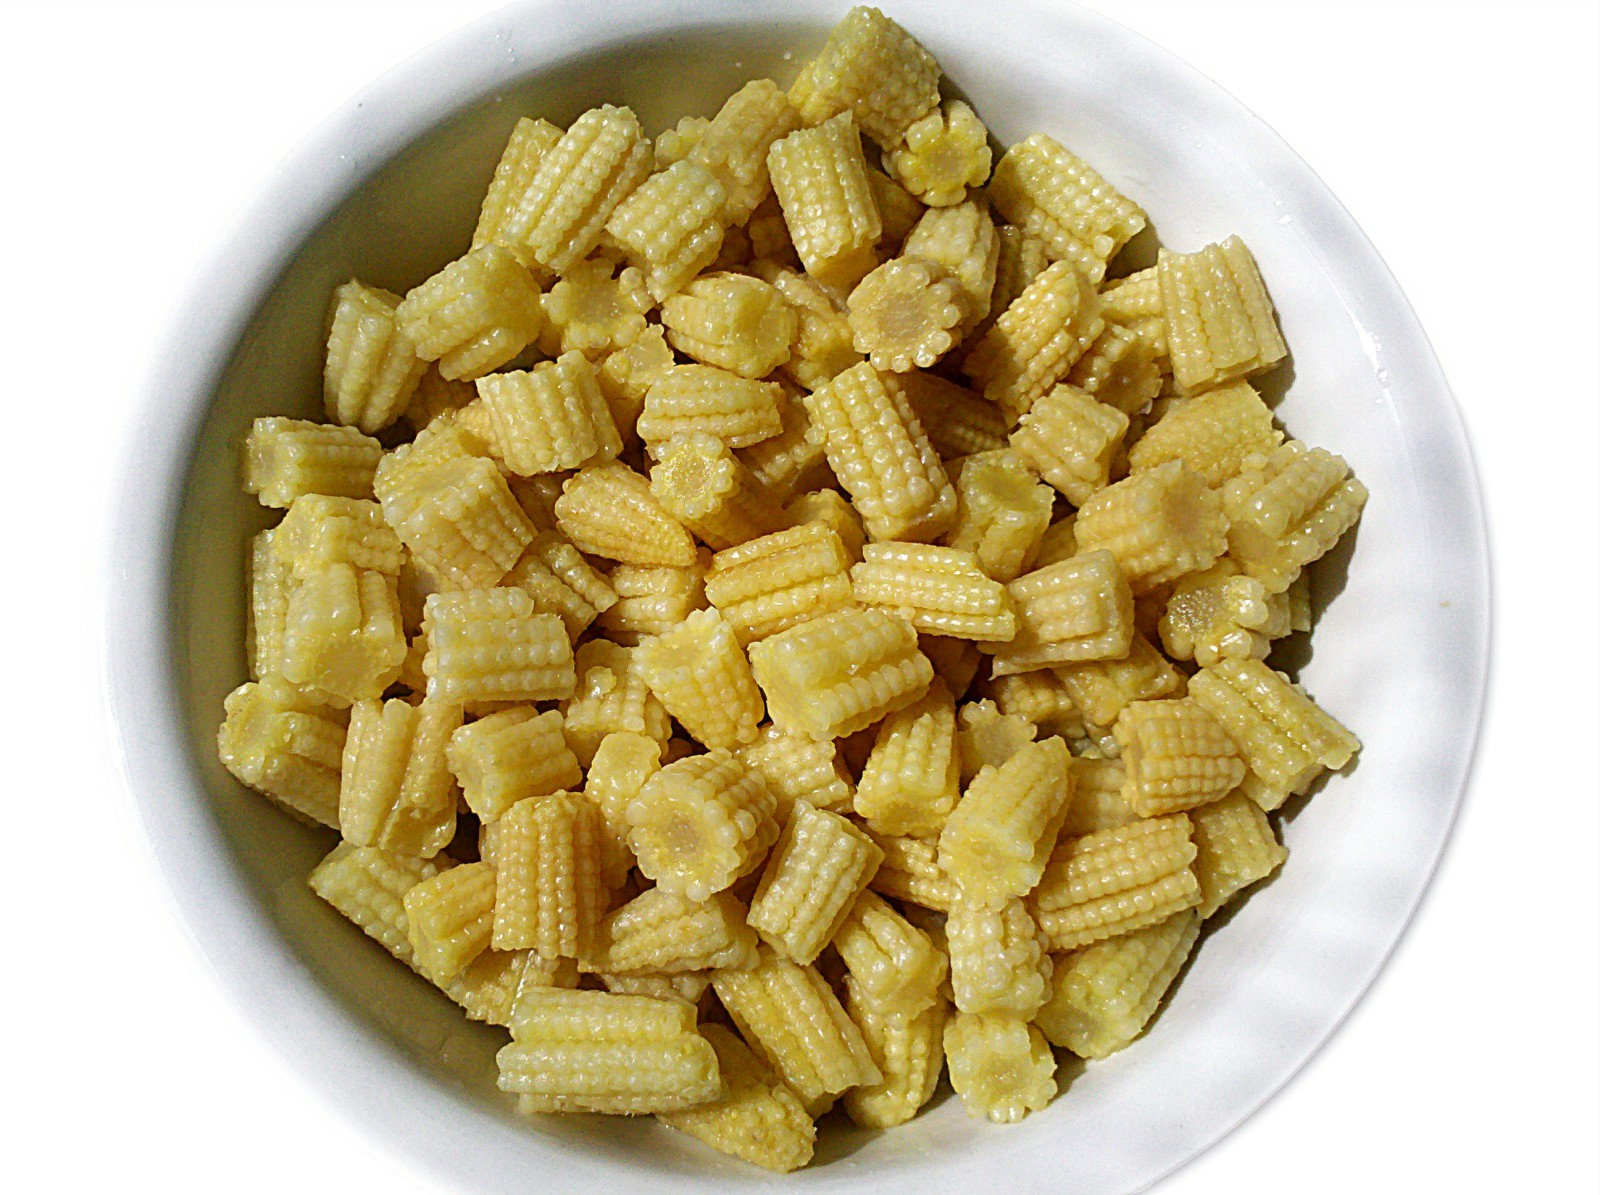 Canned baby corn cut/whole